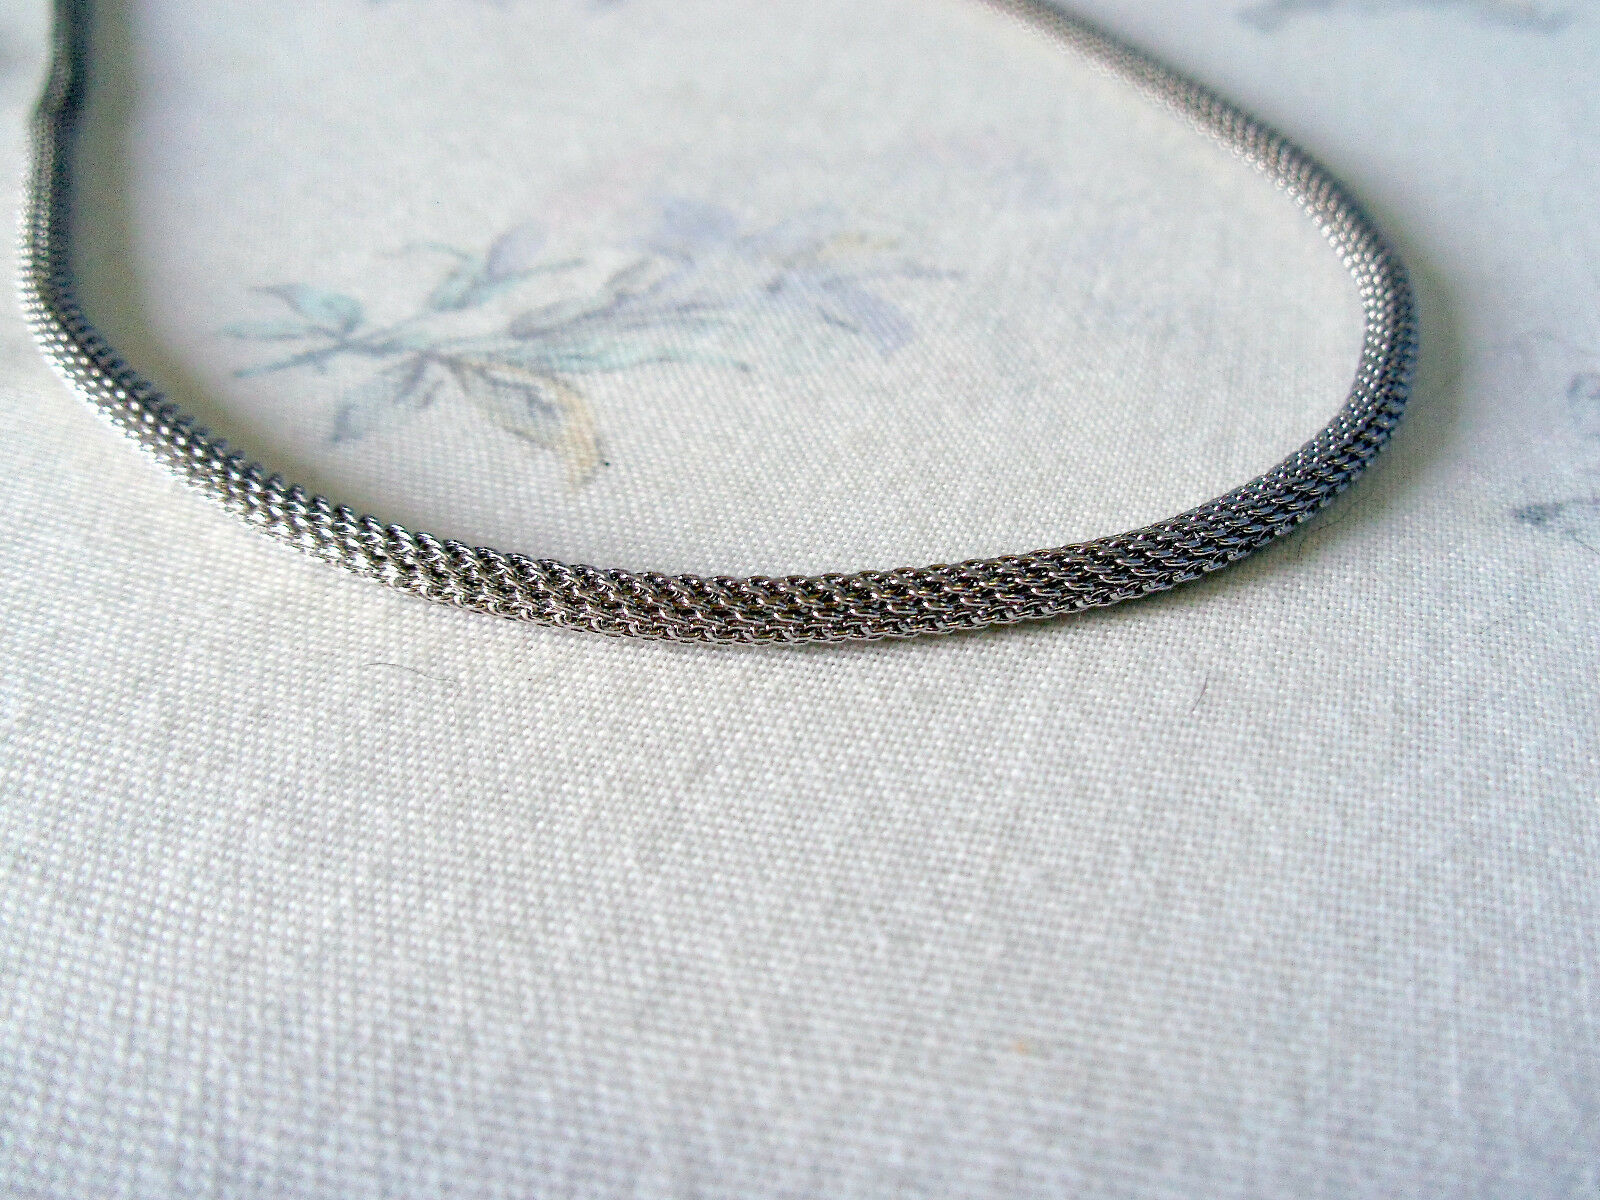 """925 STERLING SILVER NO STONE 3MM  CHAIN  (16 - 17 3/4 """")HALLMARKED IN LONDON"""